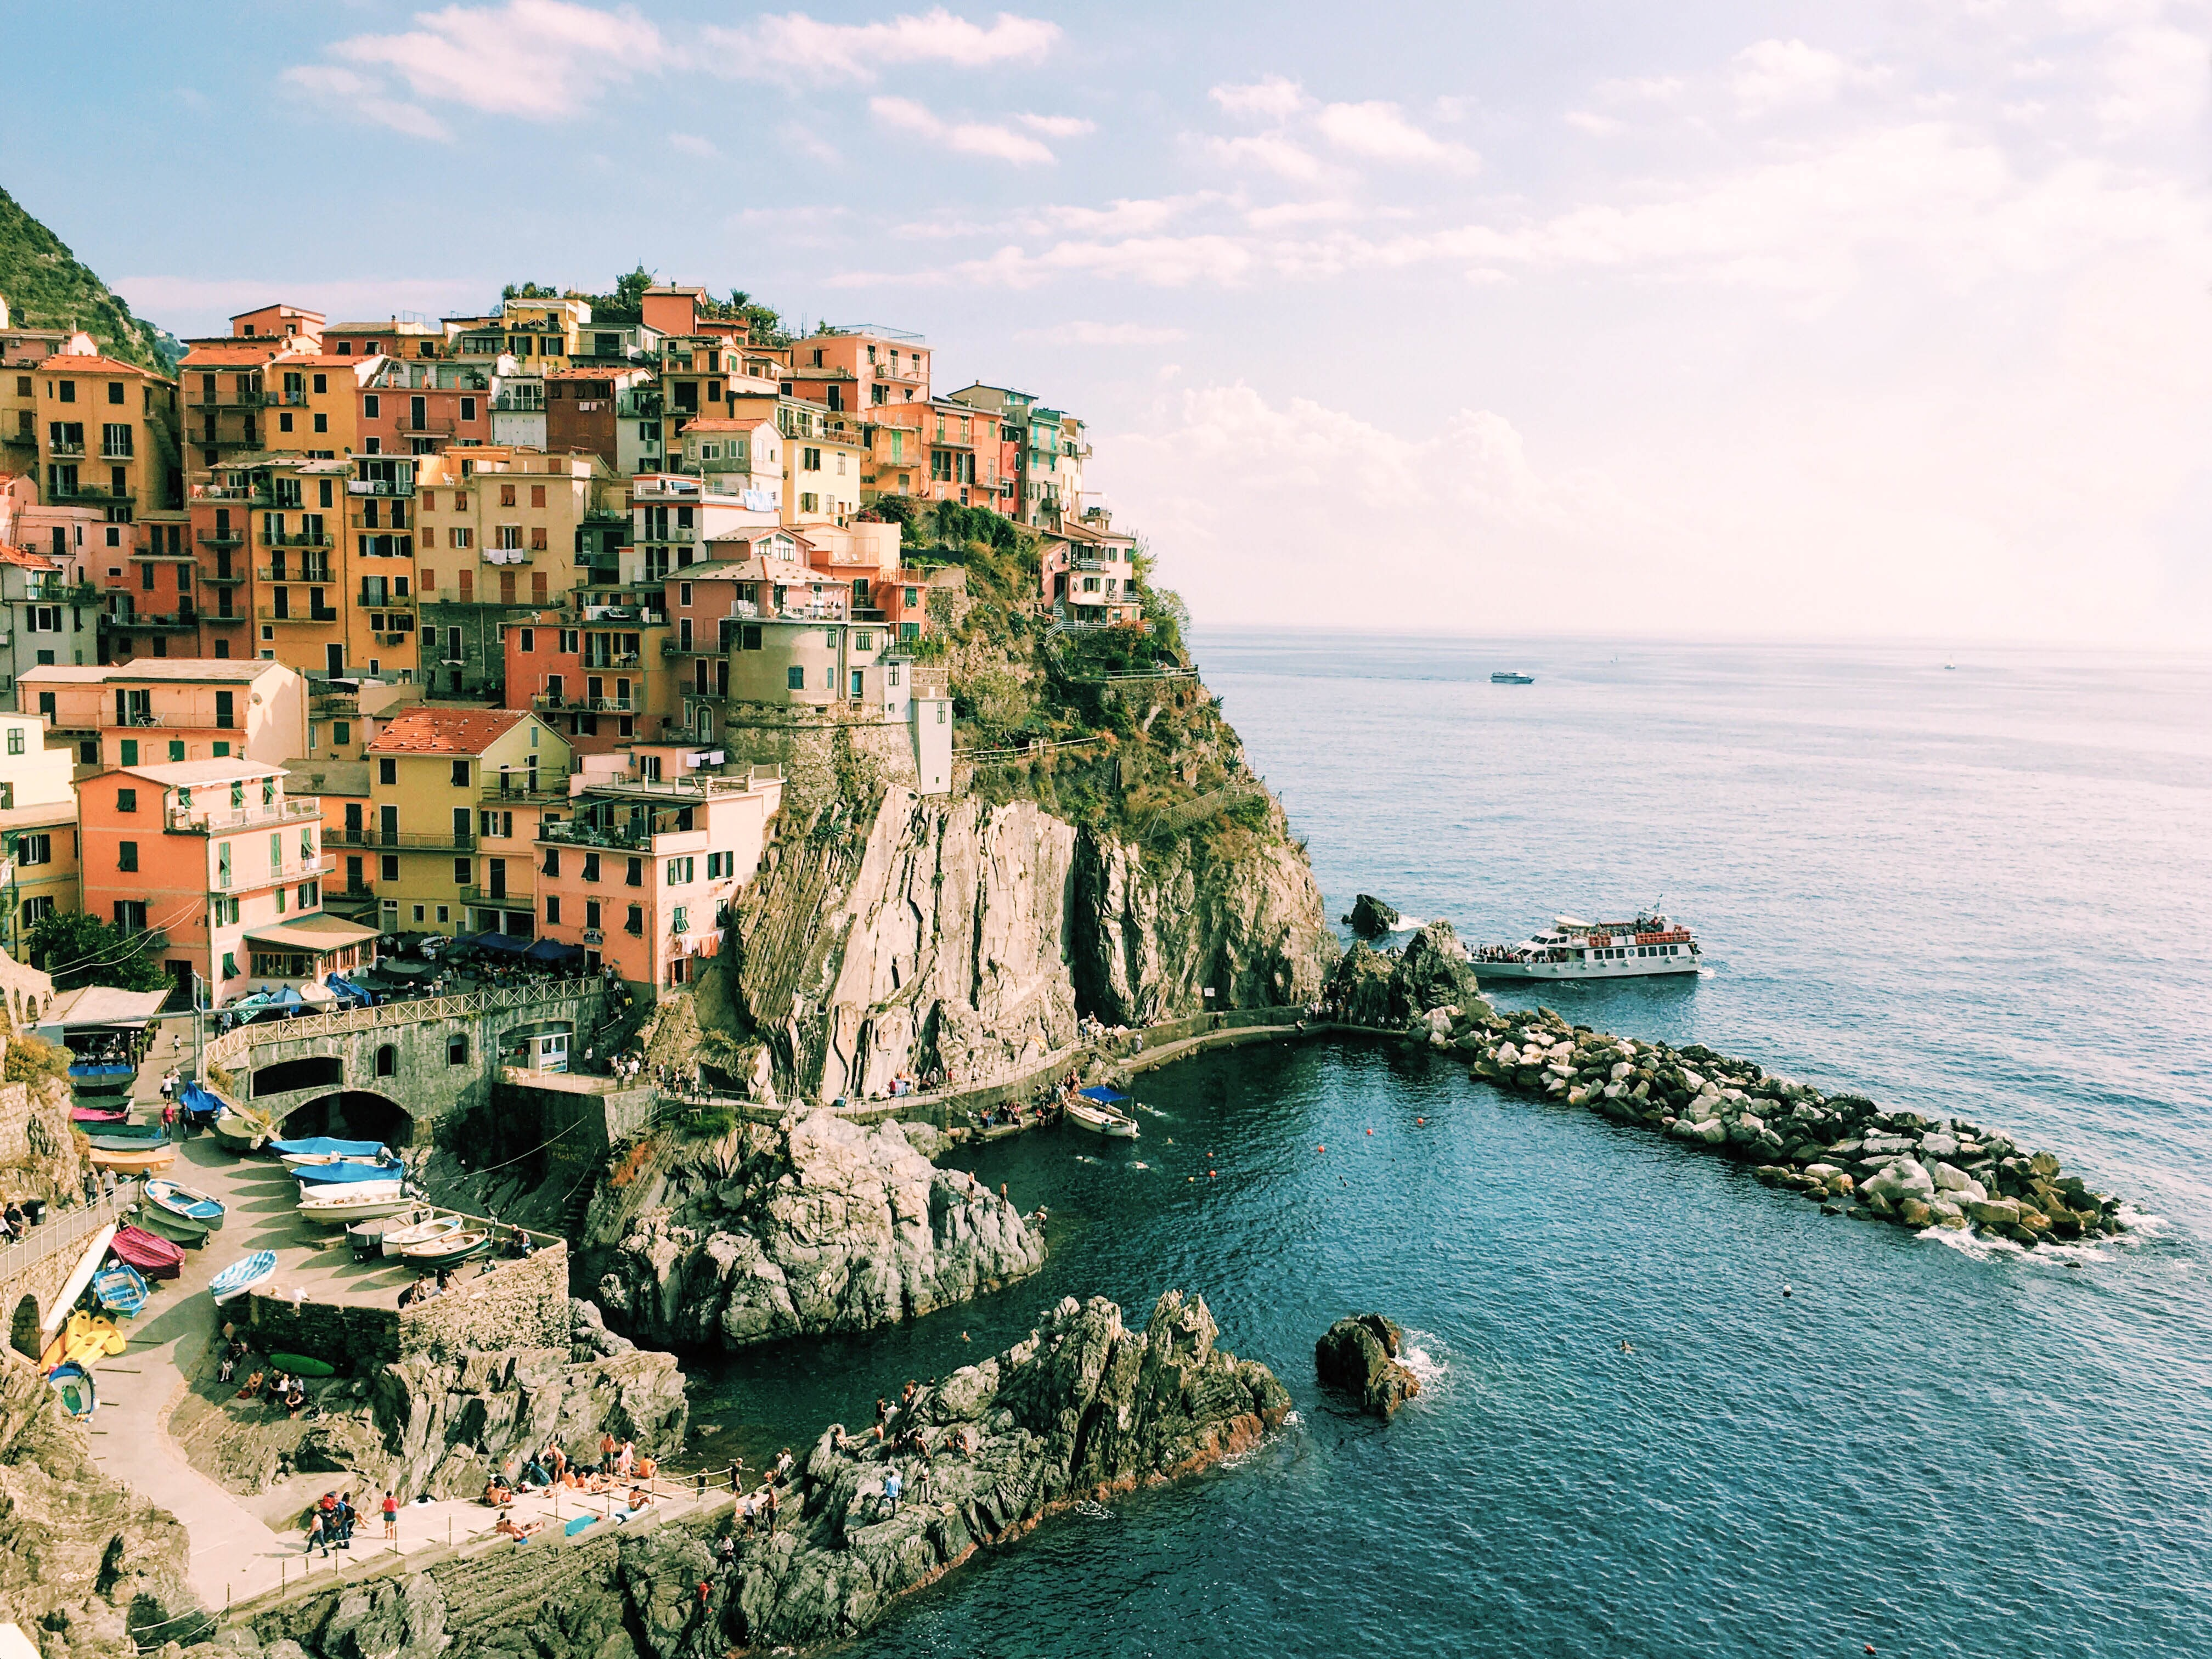 There is so much to see and do in Italy, it's almost impossible to keep track! Luckily for you, I've pulled together the Ultimate Italian Bucket List.